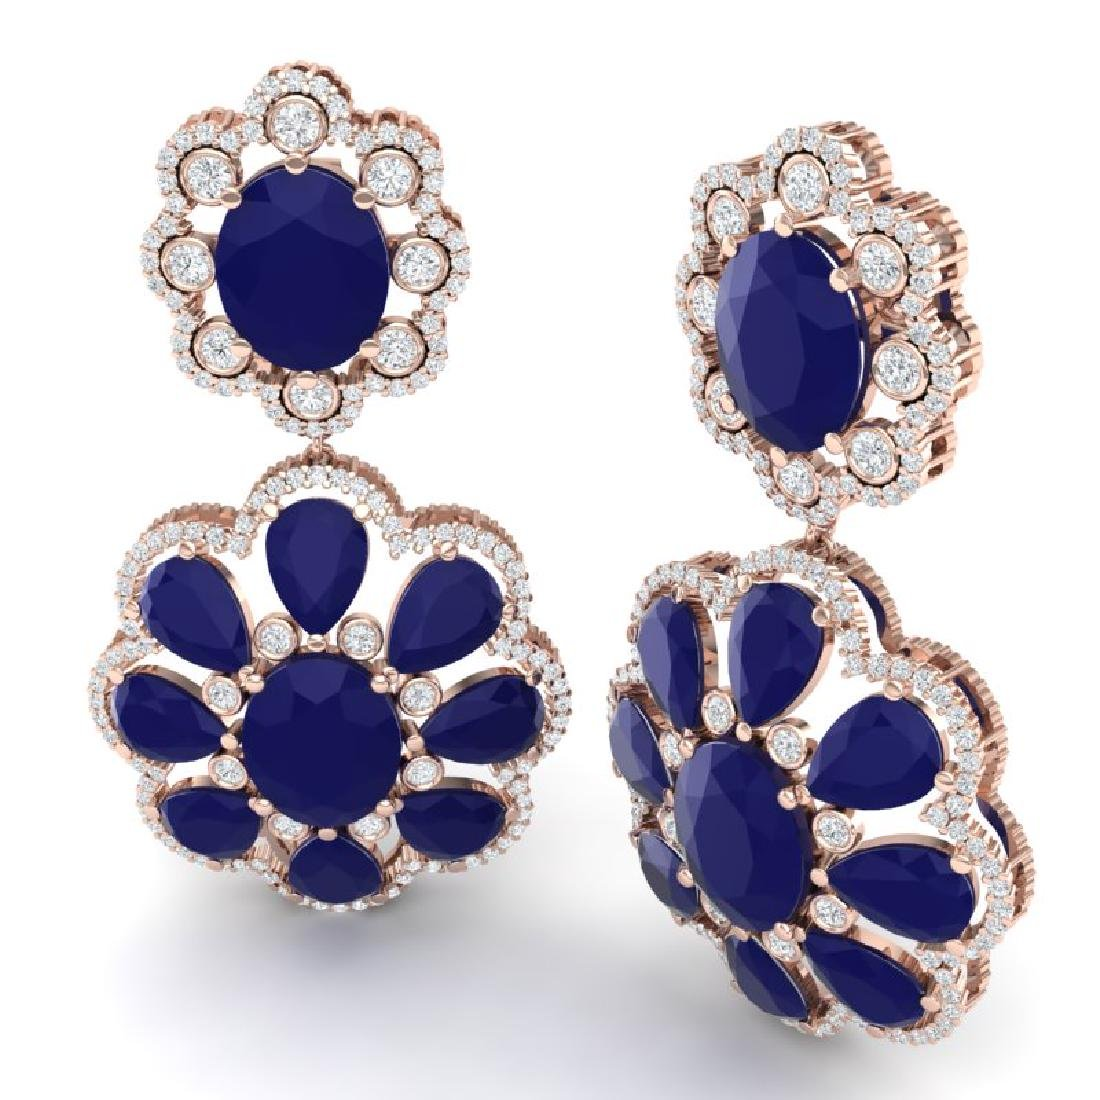 33.88 CTW Royalty Sapphire & VS Diamond Earrings 18K - 3